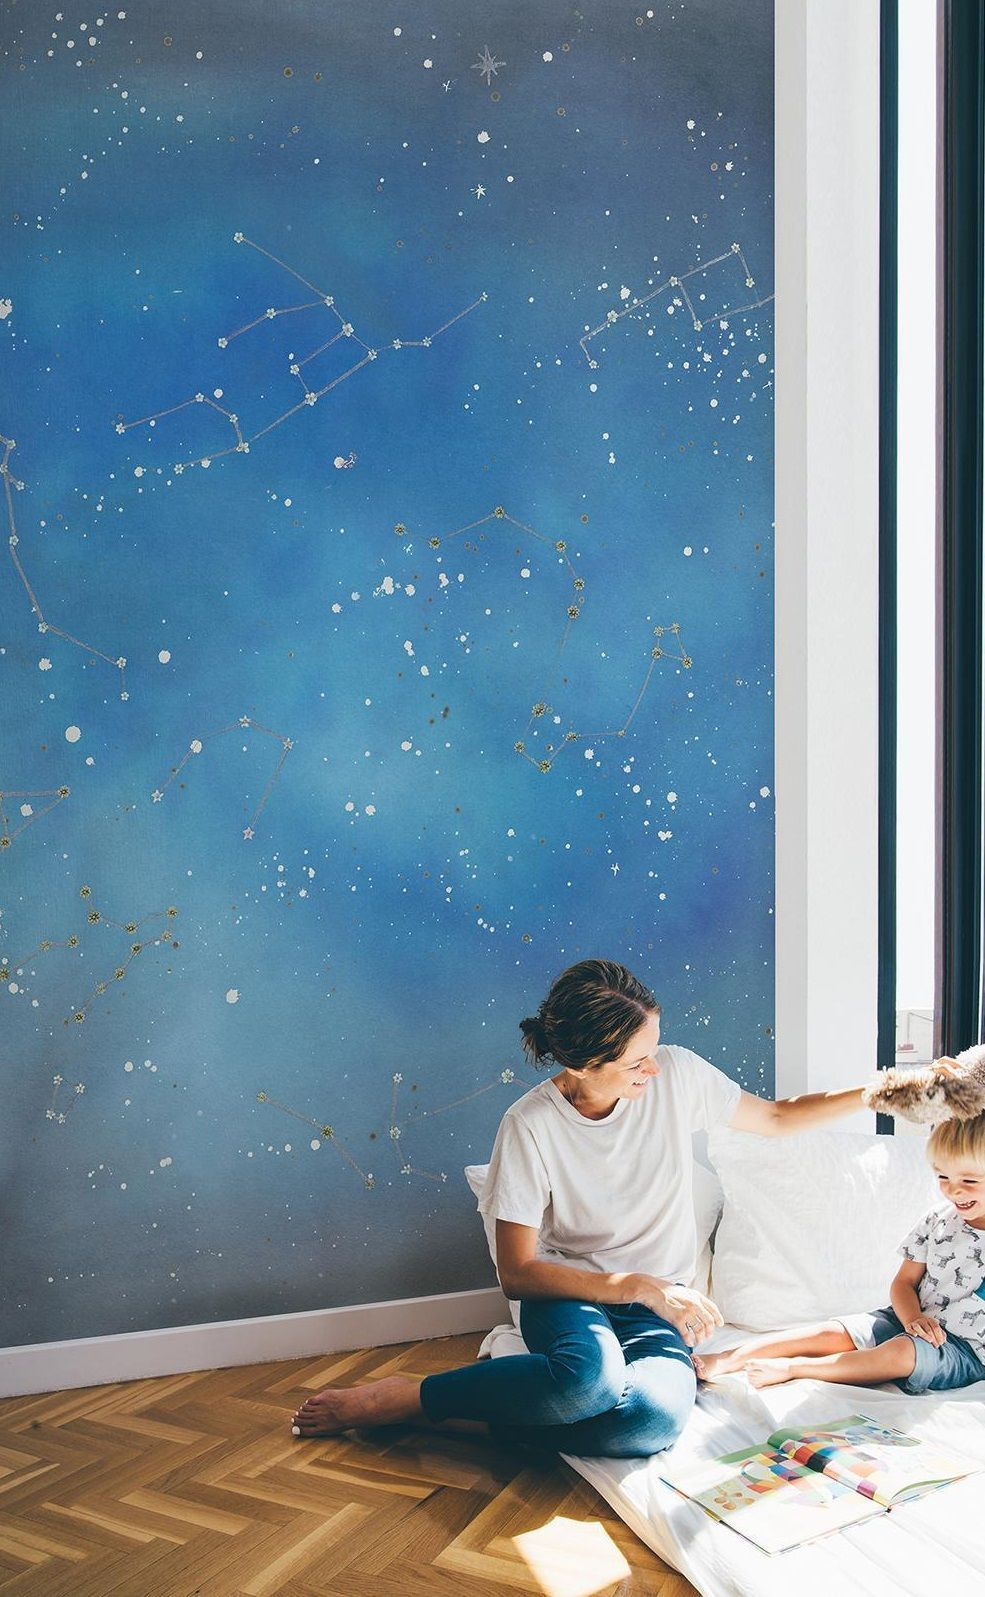 This Constellations Starry Night Sky Wallpaper Mural Is Perfect